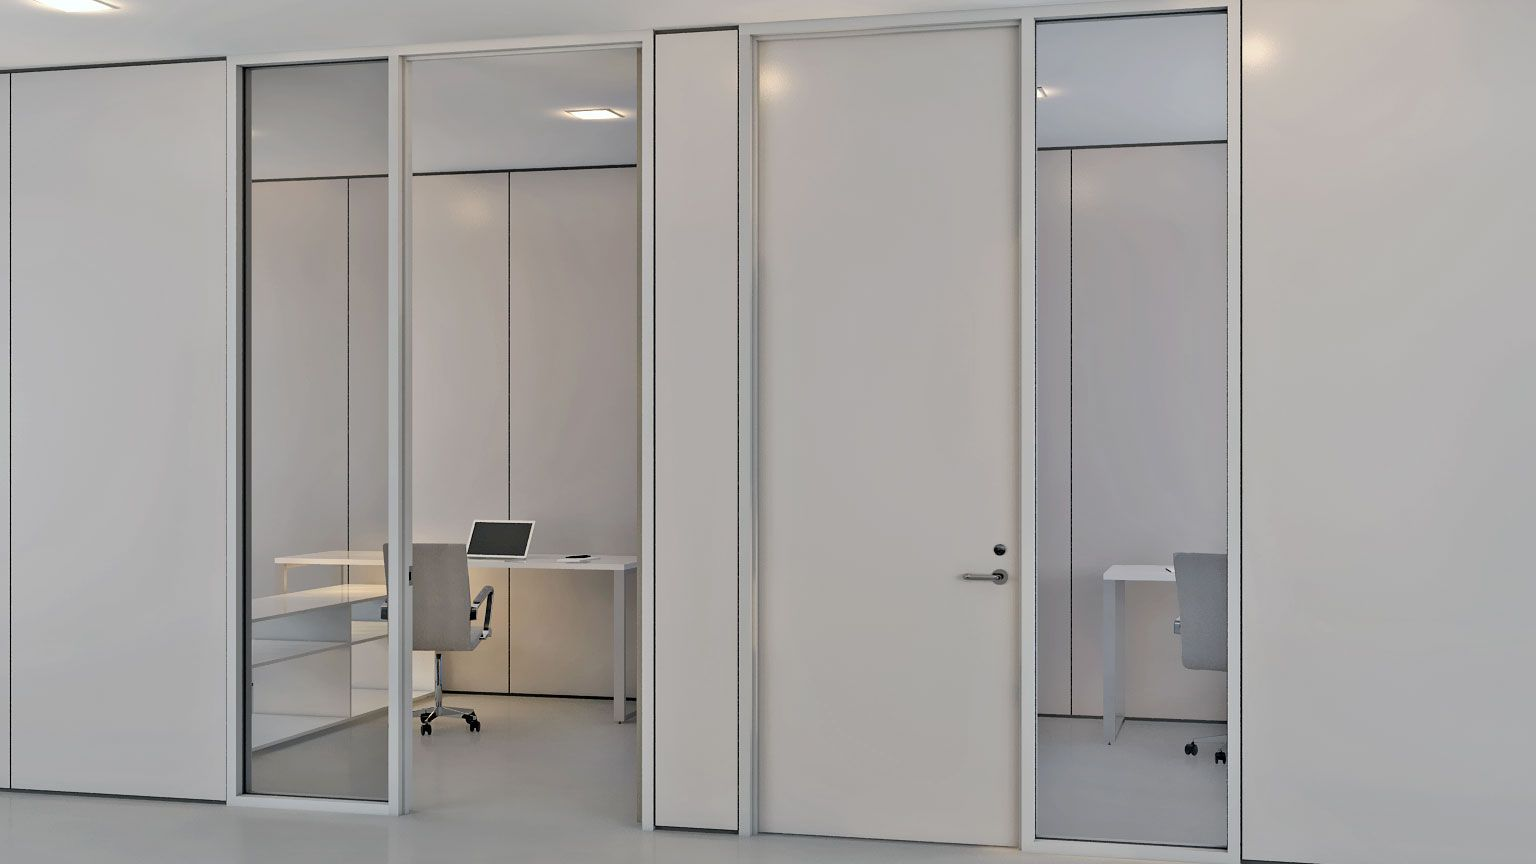 office doors designs. Modern Minimalist Doors With Sidelights Office Designs